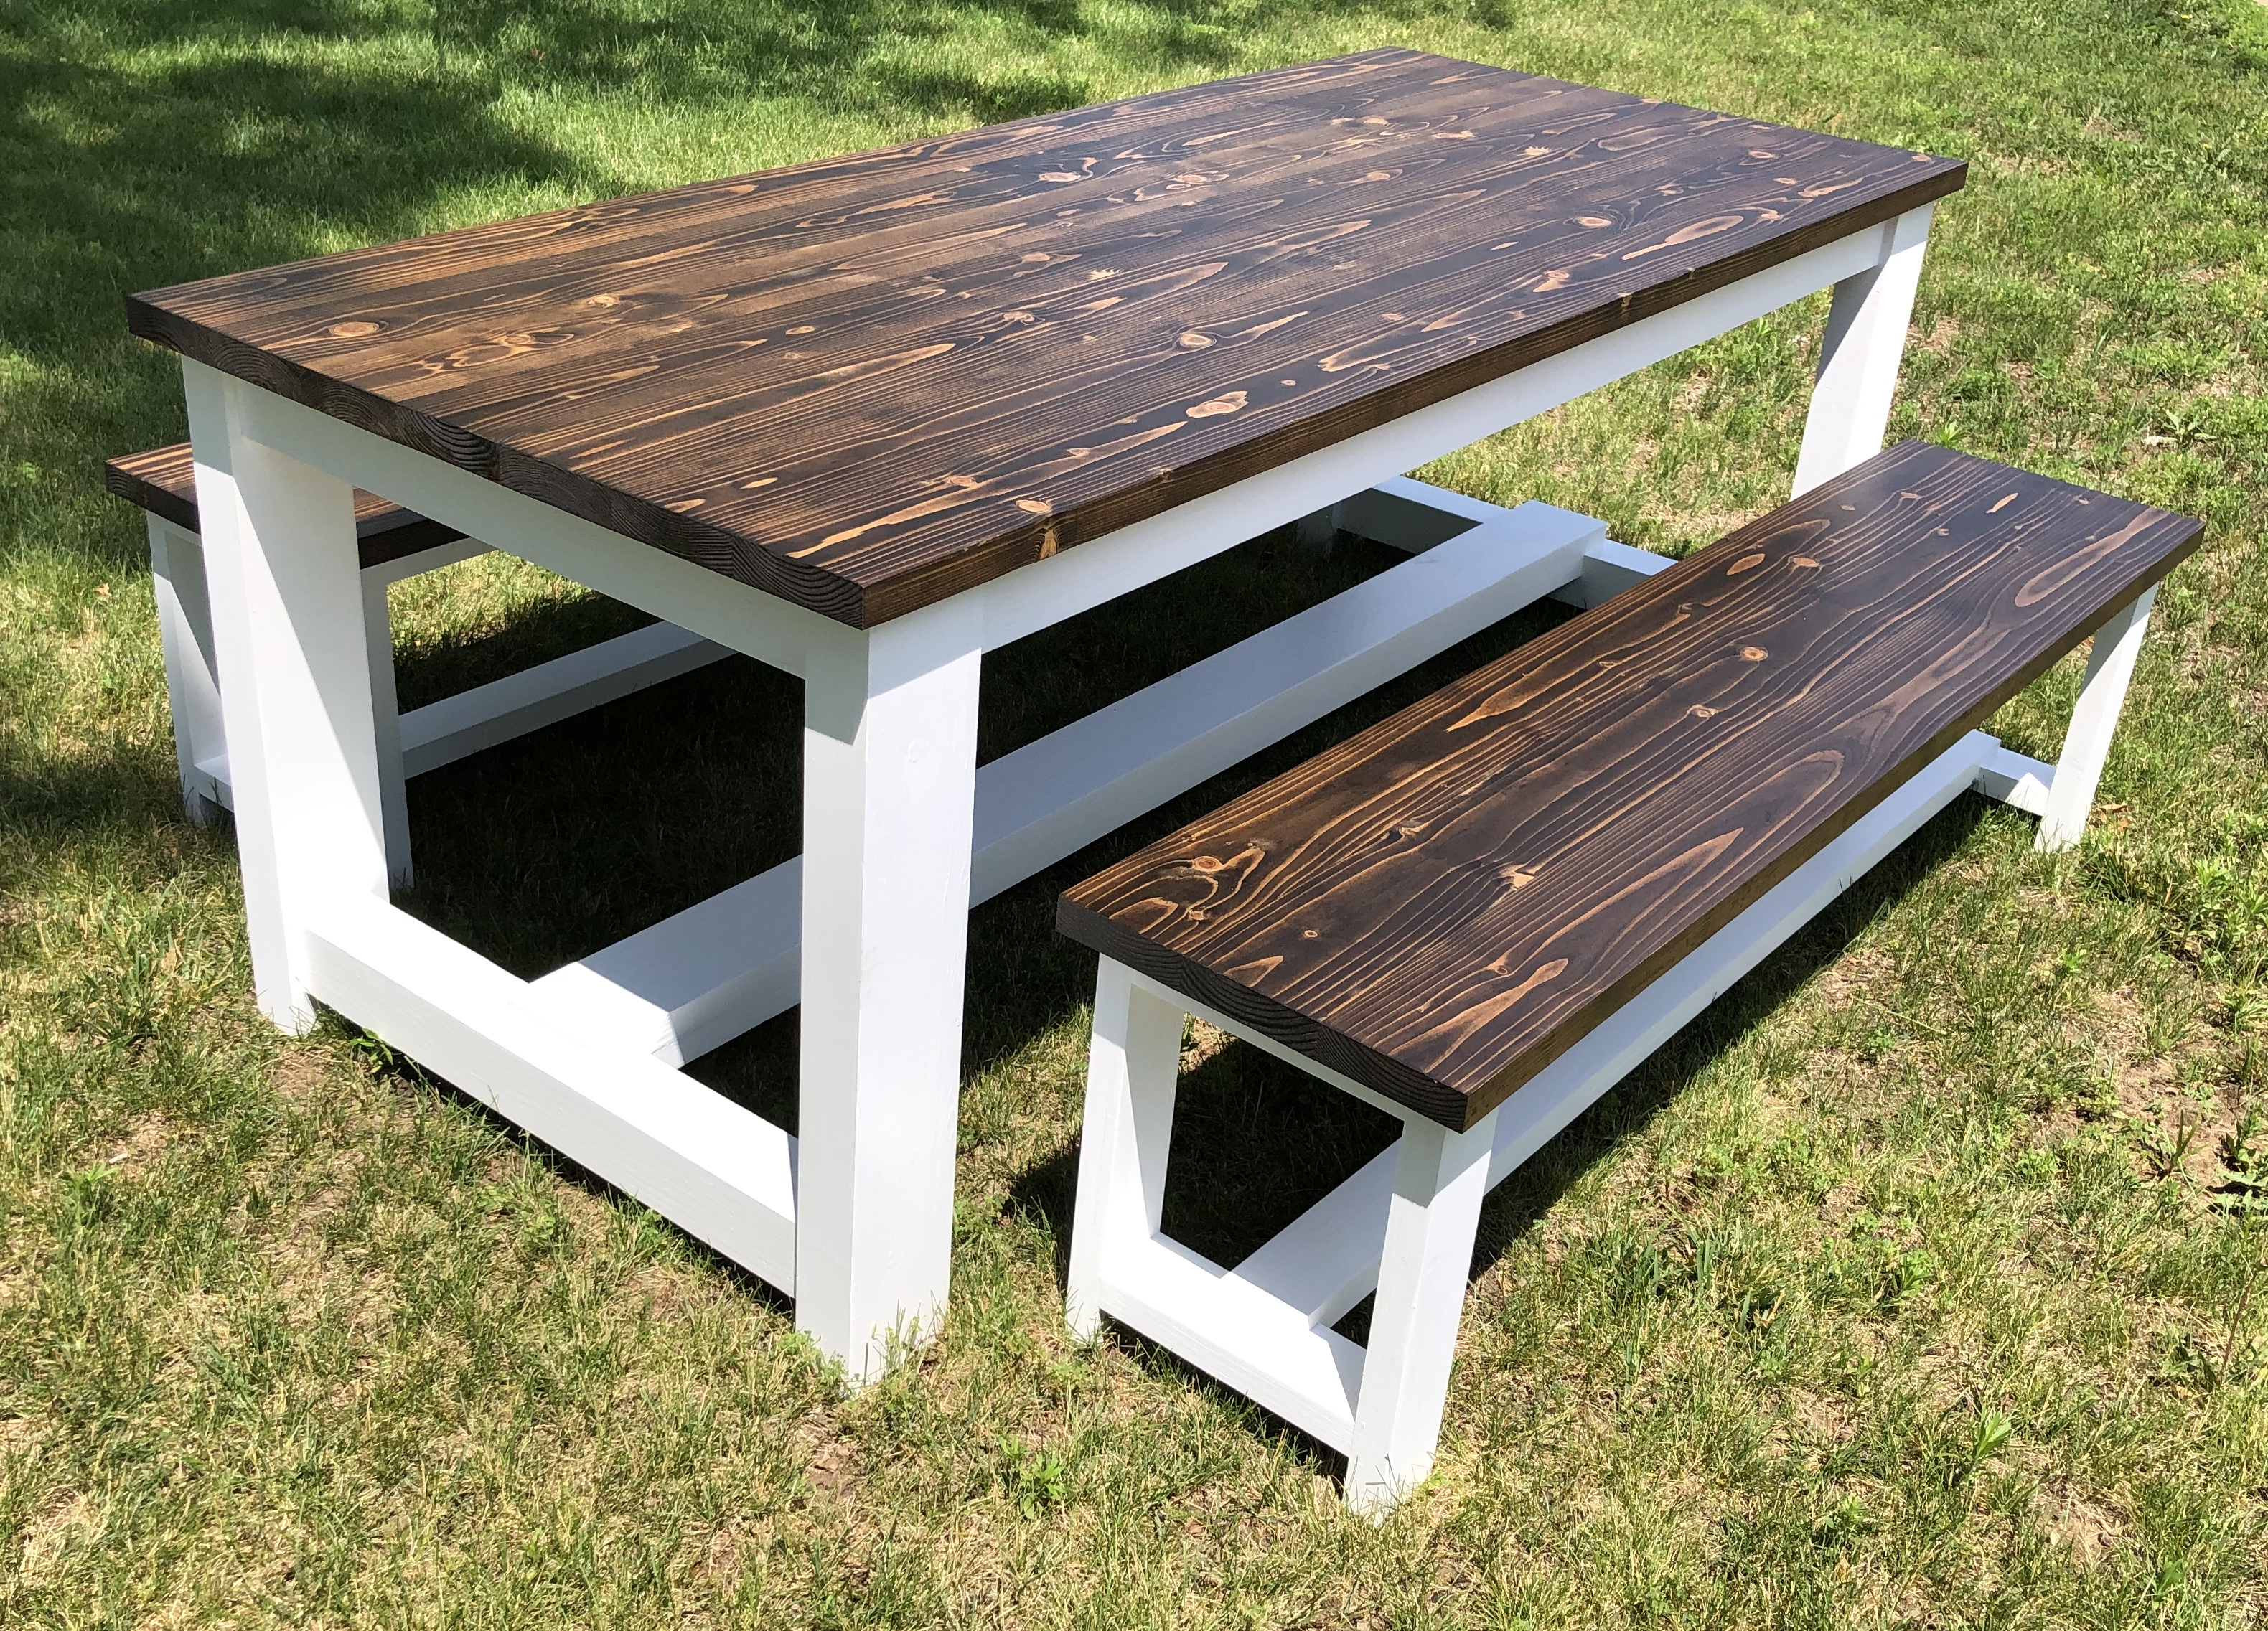 SWELL FARMTABLE & FARMHOUSE BENCH